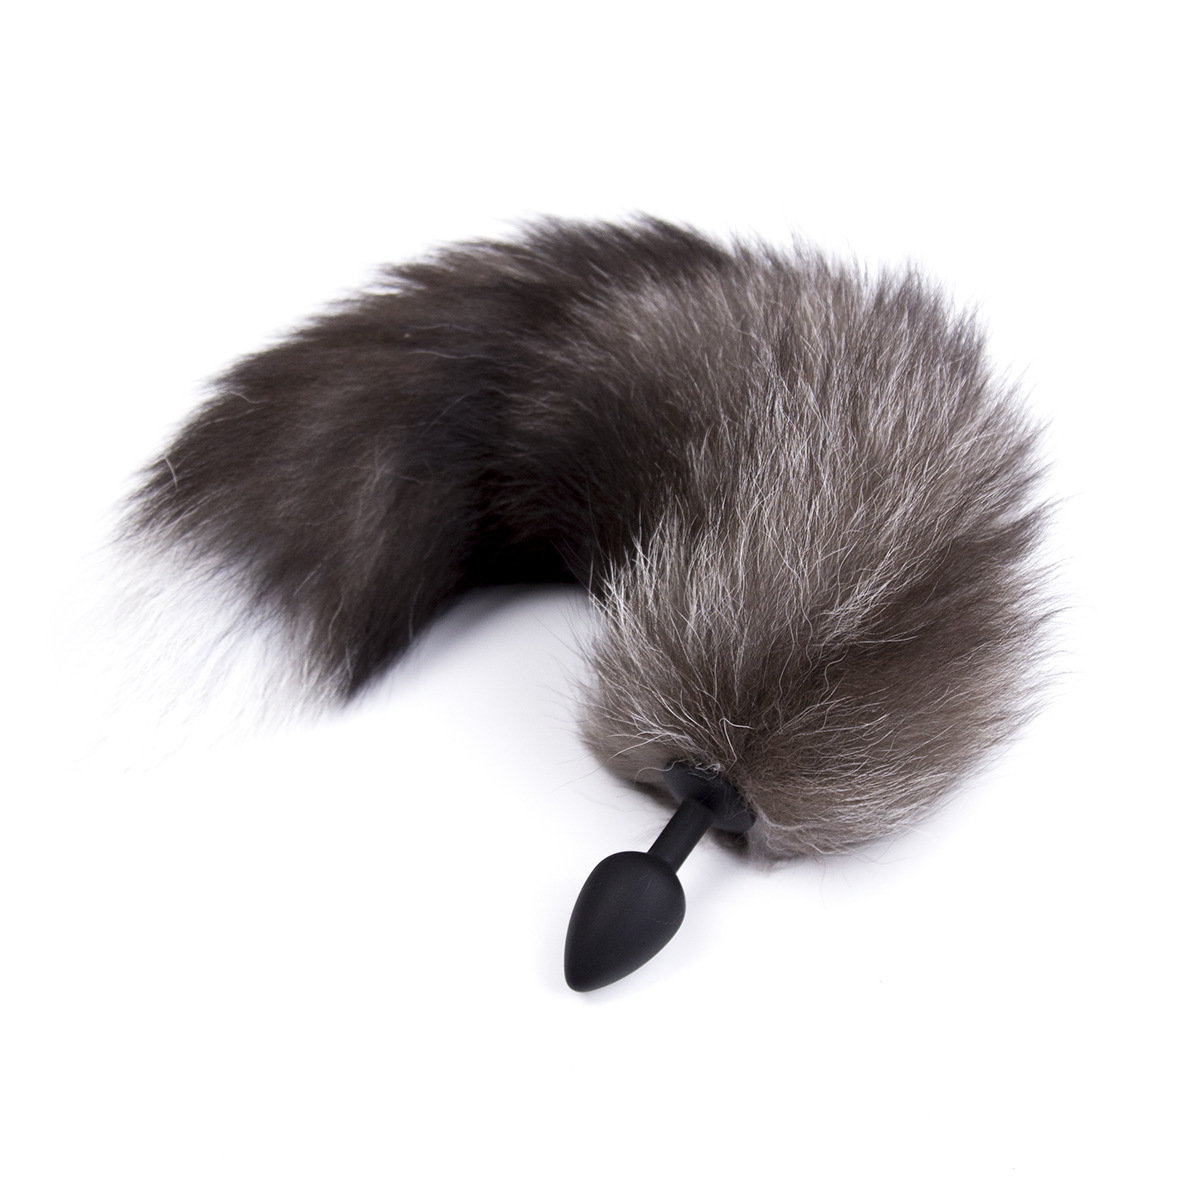 Fluffy Fox Tail Silicone Butt Anal Plug Erotic Toys